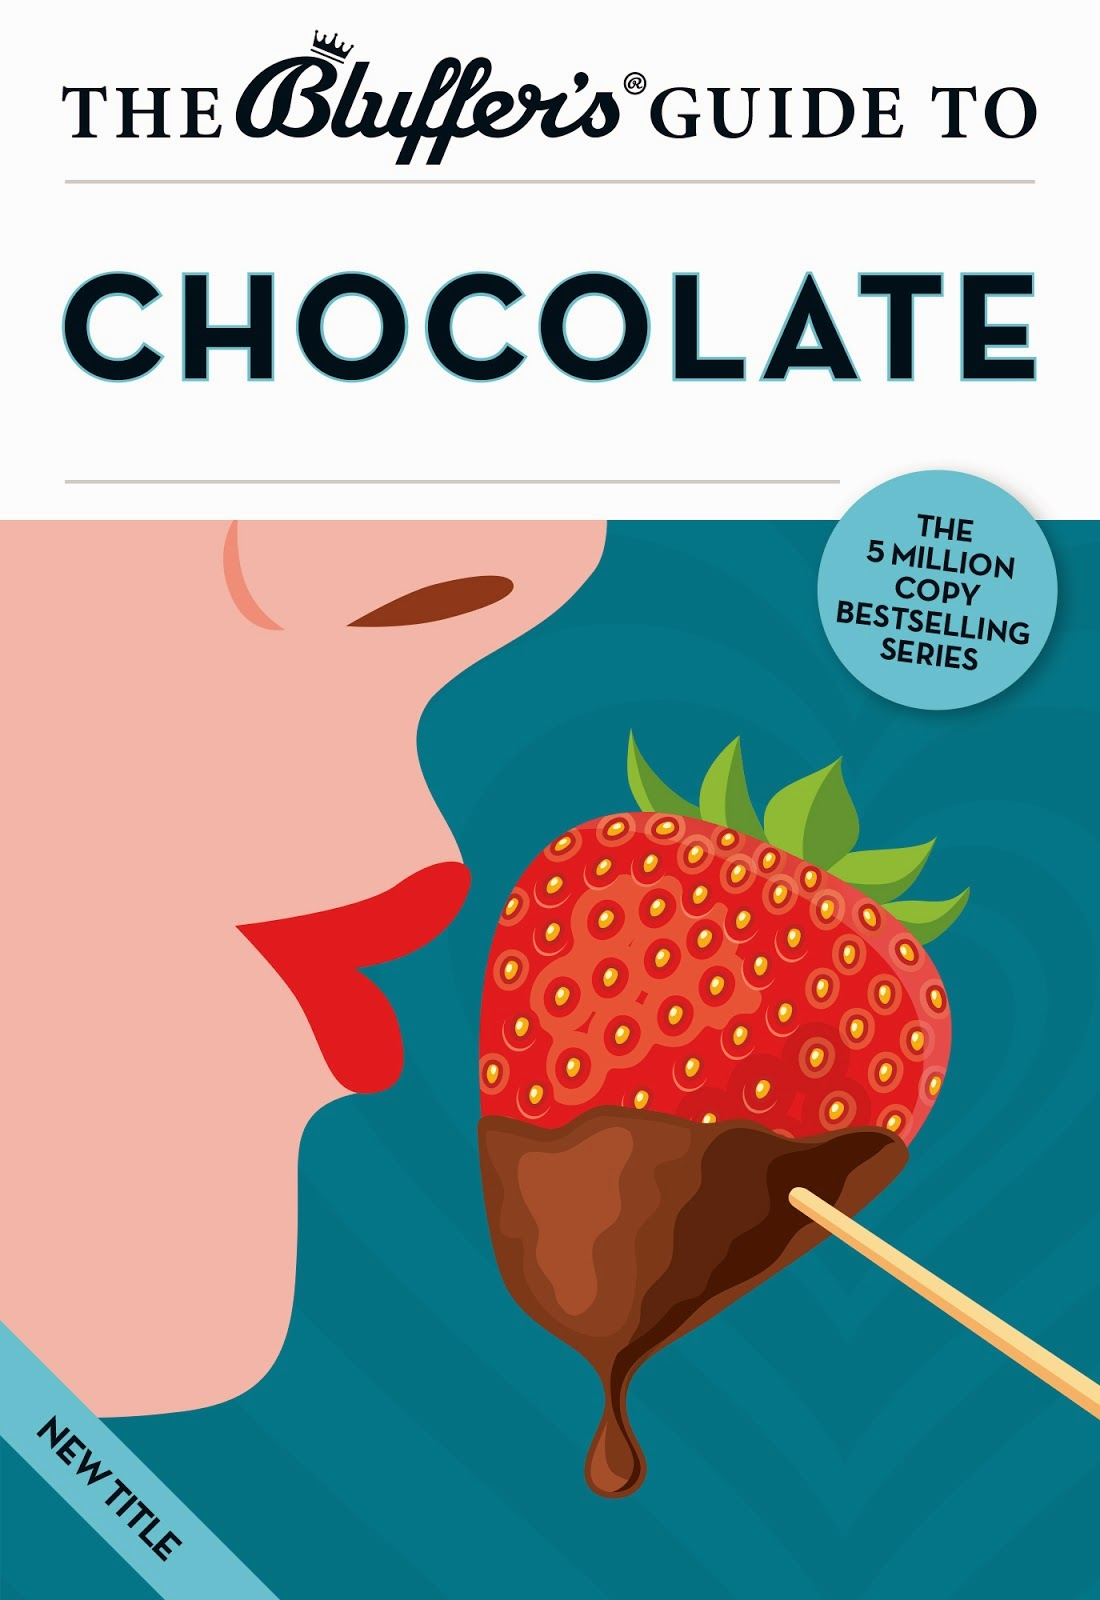 Get THE guide to chocolate here